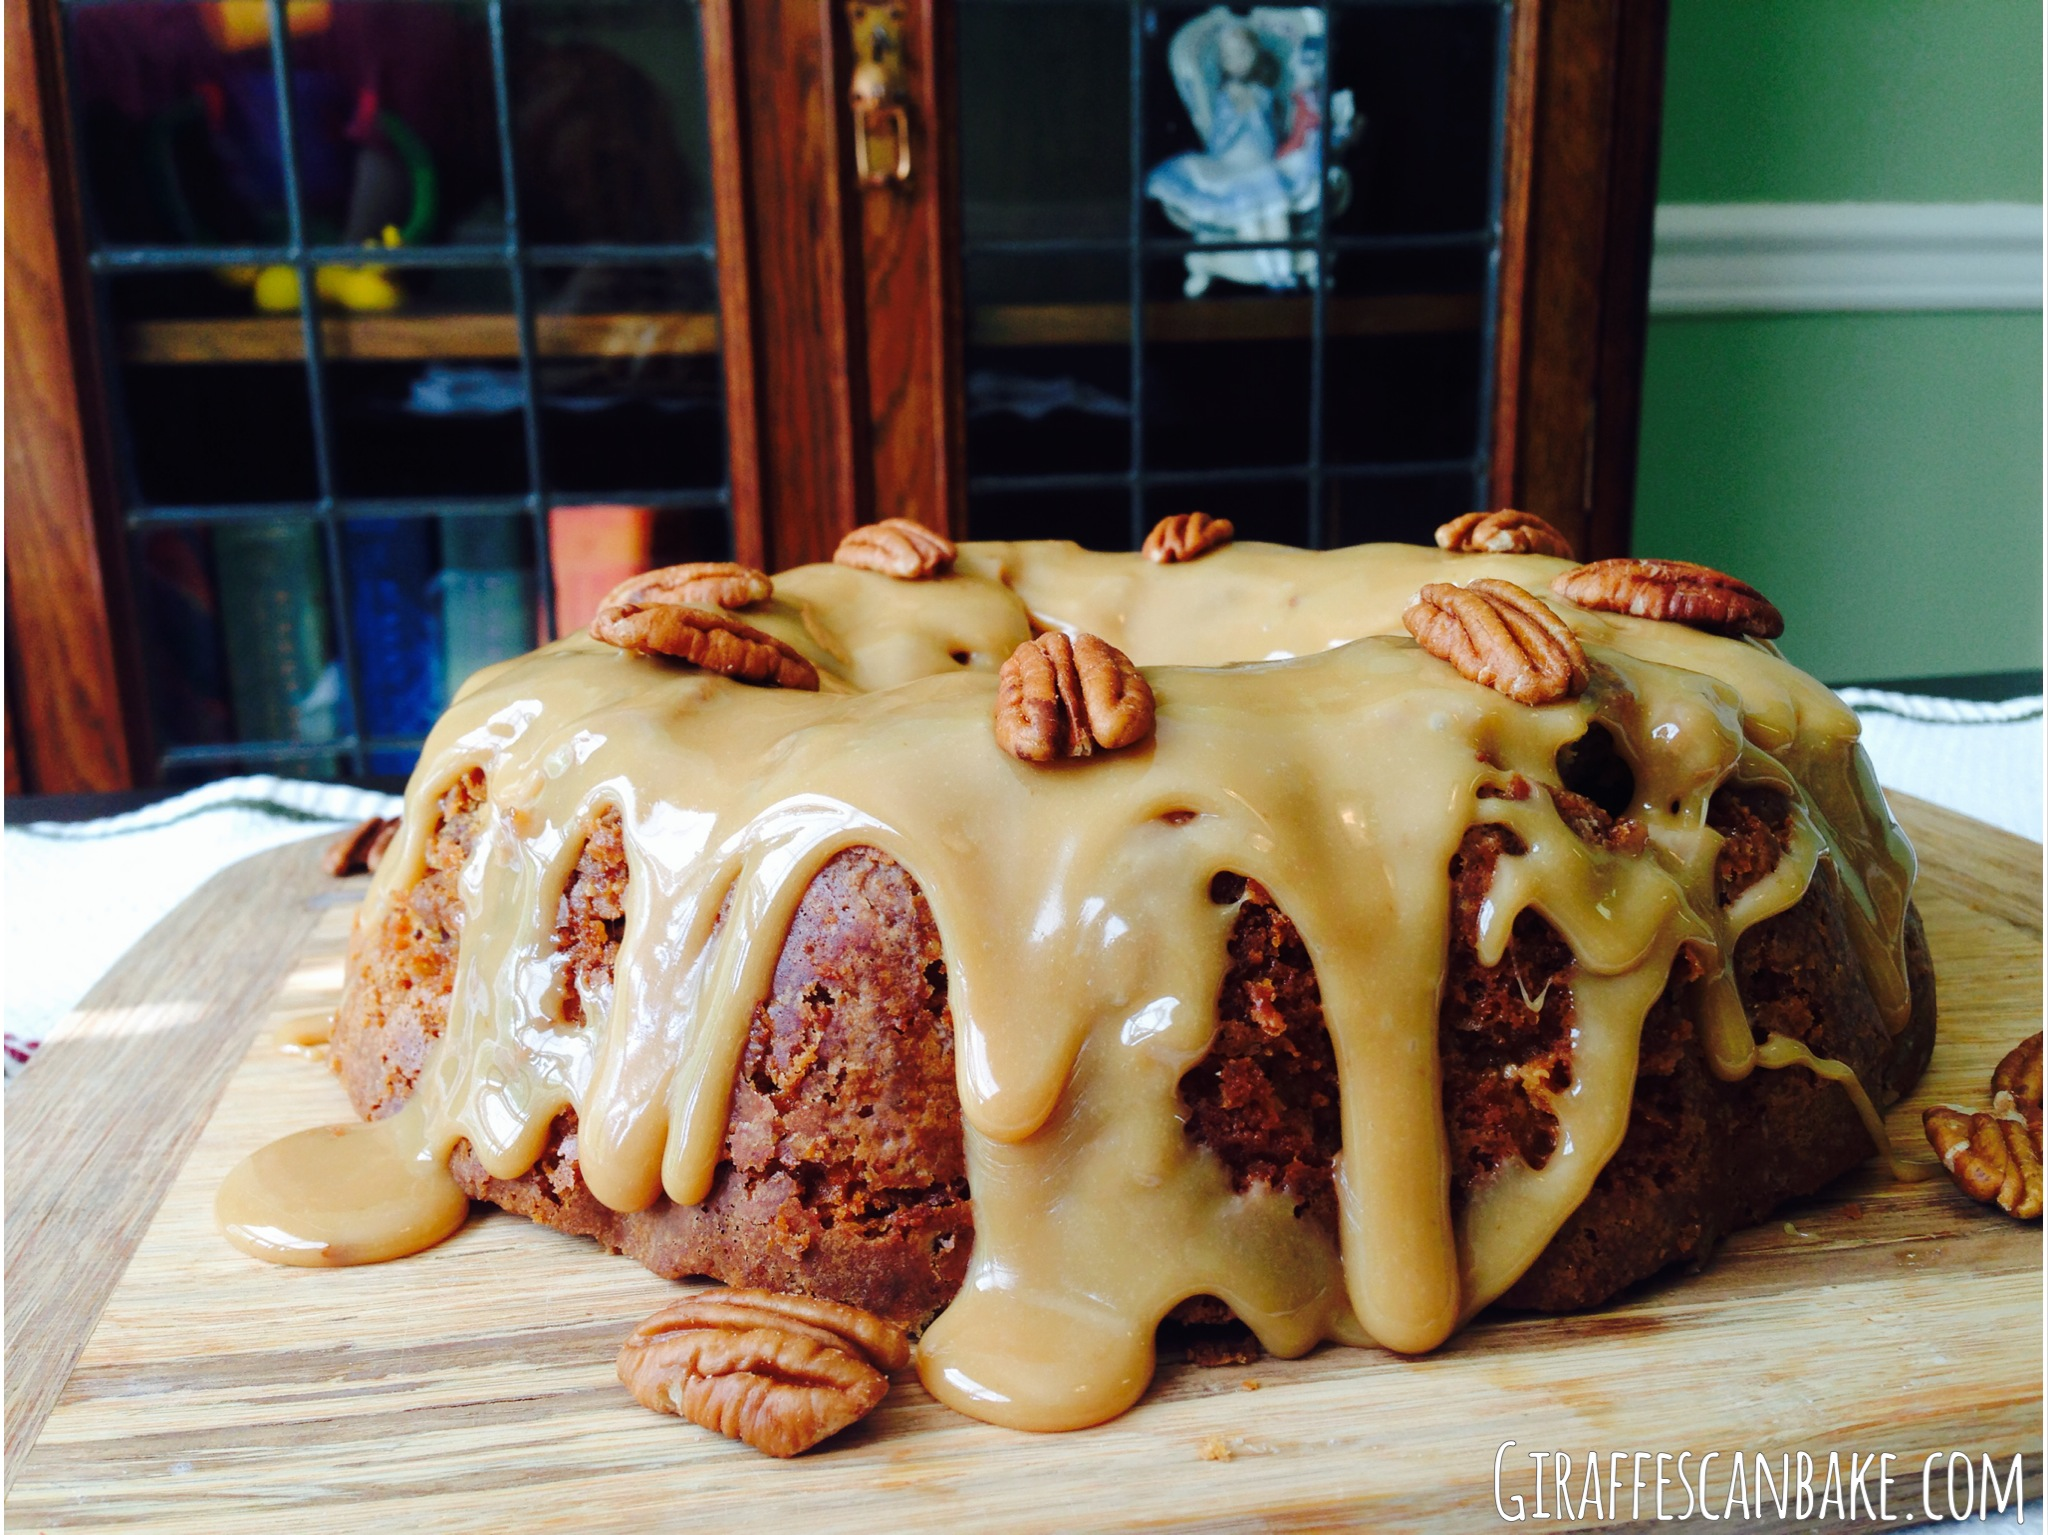 Brown Sugar and Pecan Caramel Bundt Cake - a moist and tender bundt cake stuffed full of pecans and toffee, smothered with thick caramel and topped with pecans!